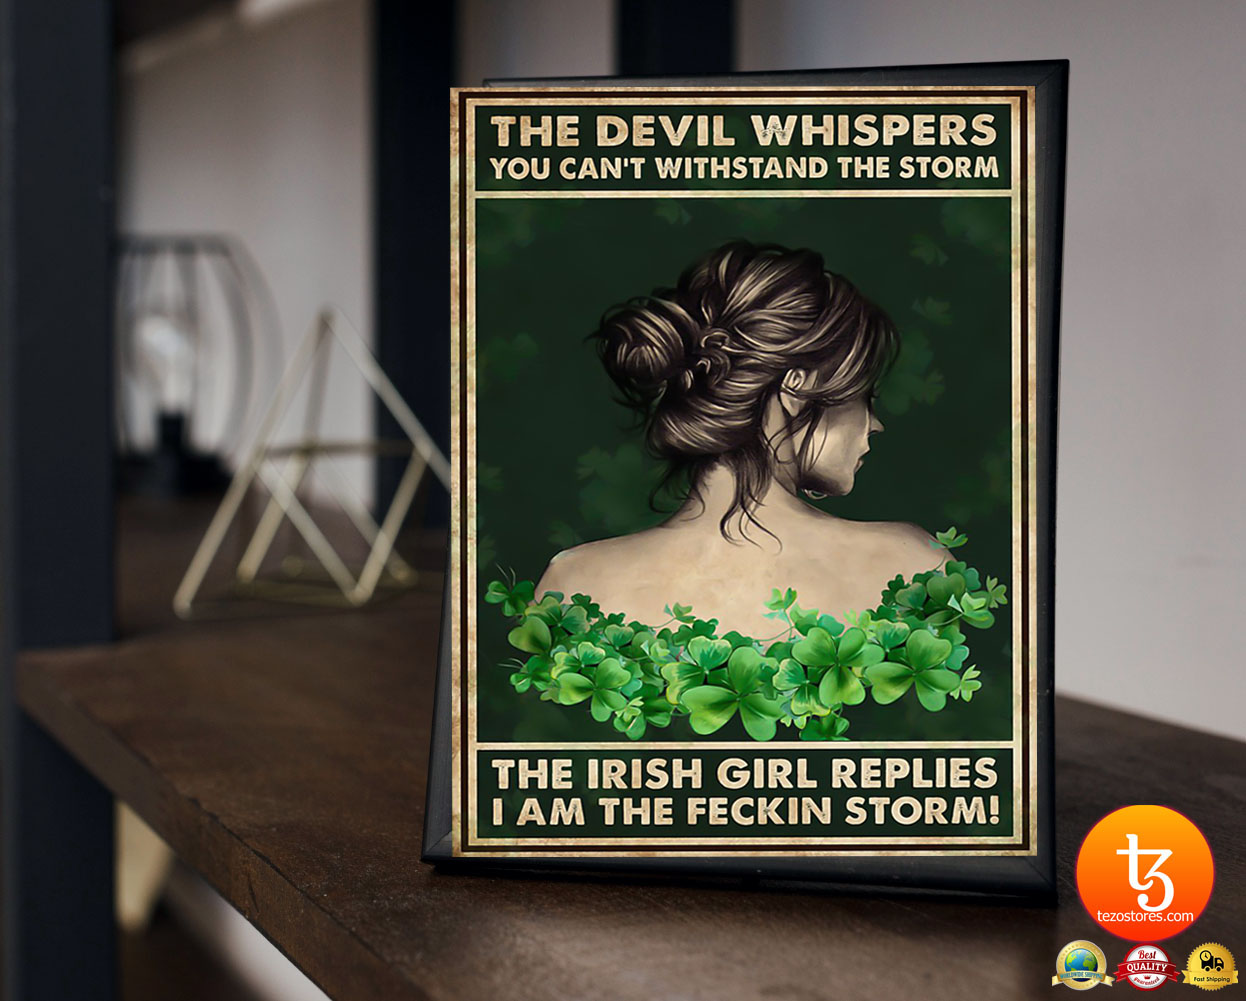 Irish girl The devil whispers you can't withstand the storm poster 3